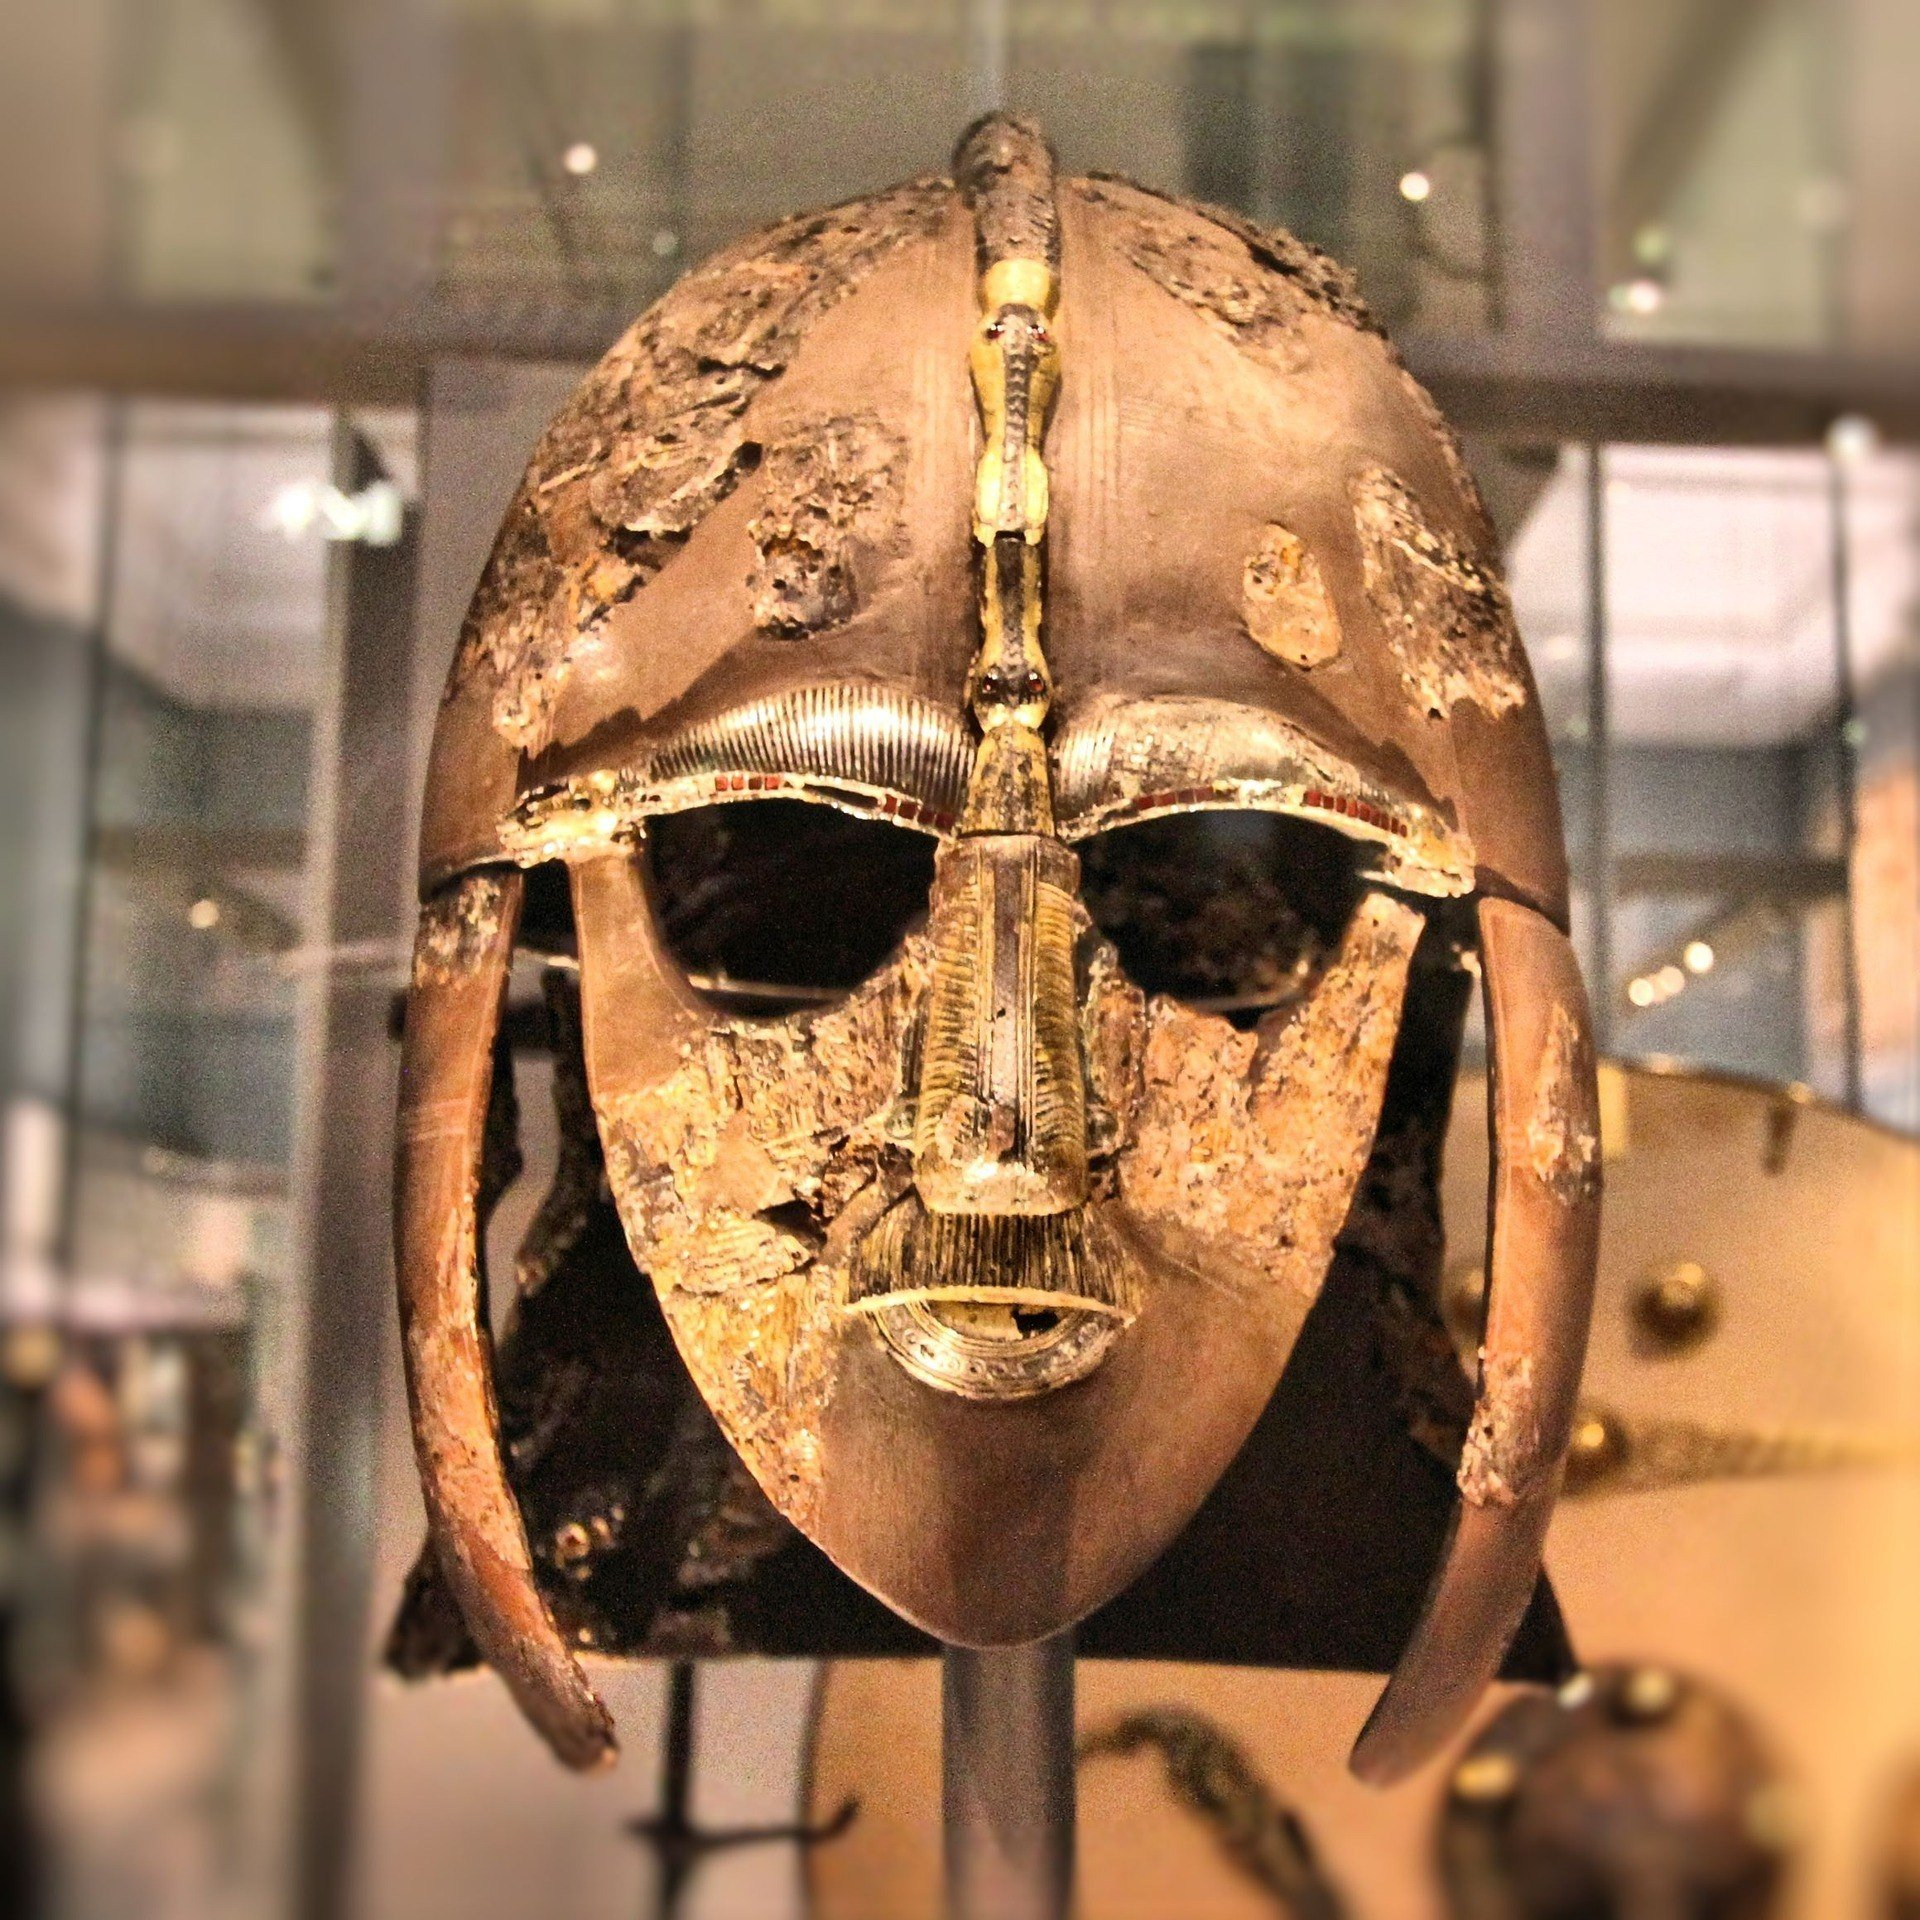 The Sutton Hoo helmet is one of the most famous artifacts in the British Museum.